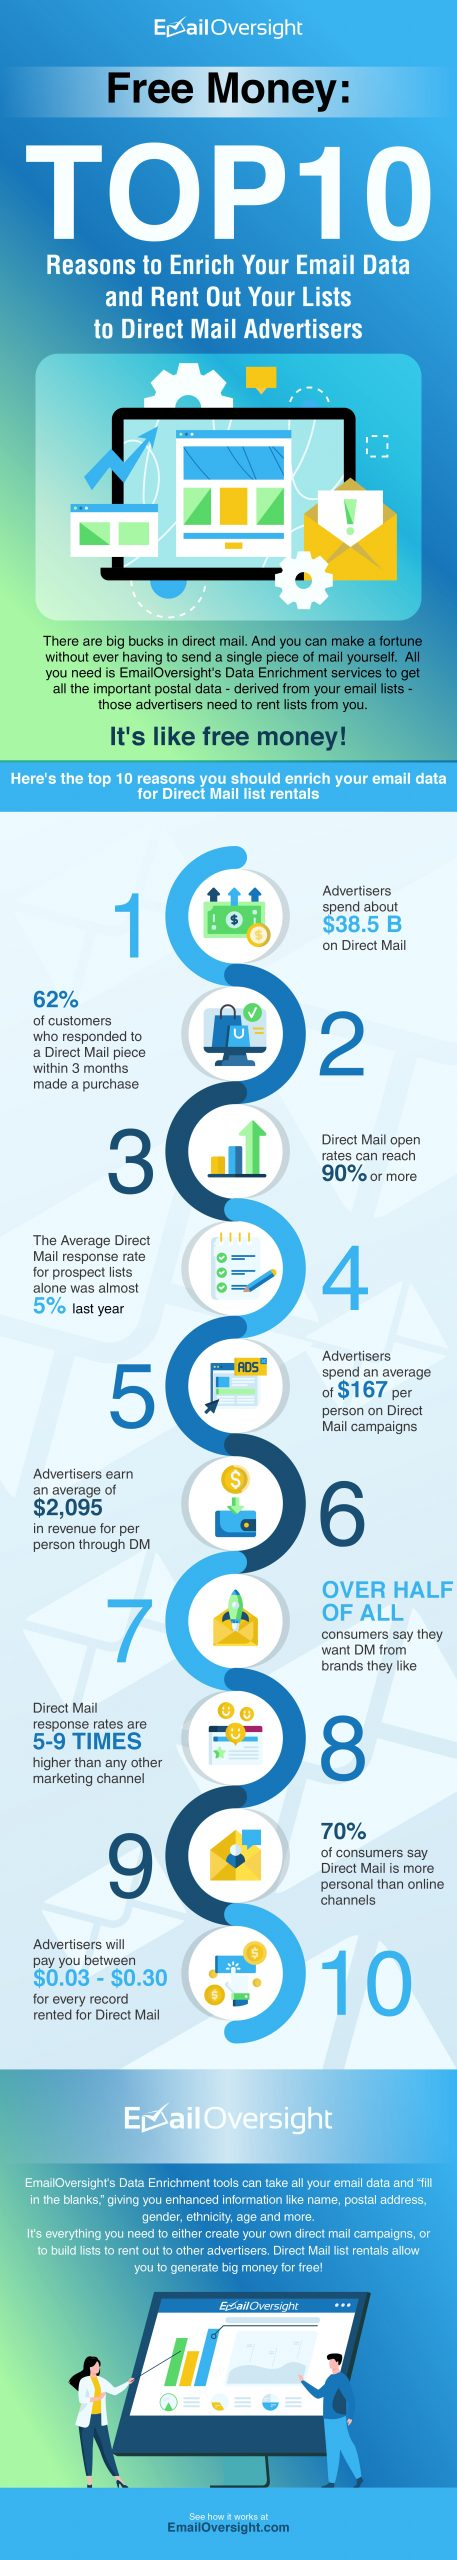 Free Money: Top 10 Reasons to Enrich Your Email Data And Rent Out Your Lists to Direct Mail Advertisers